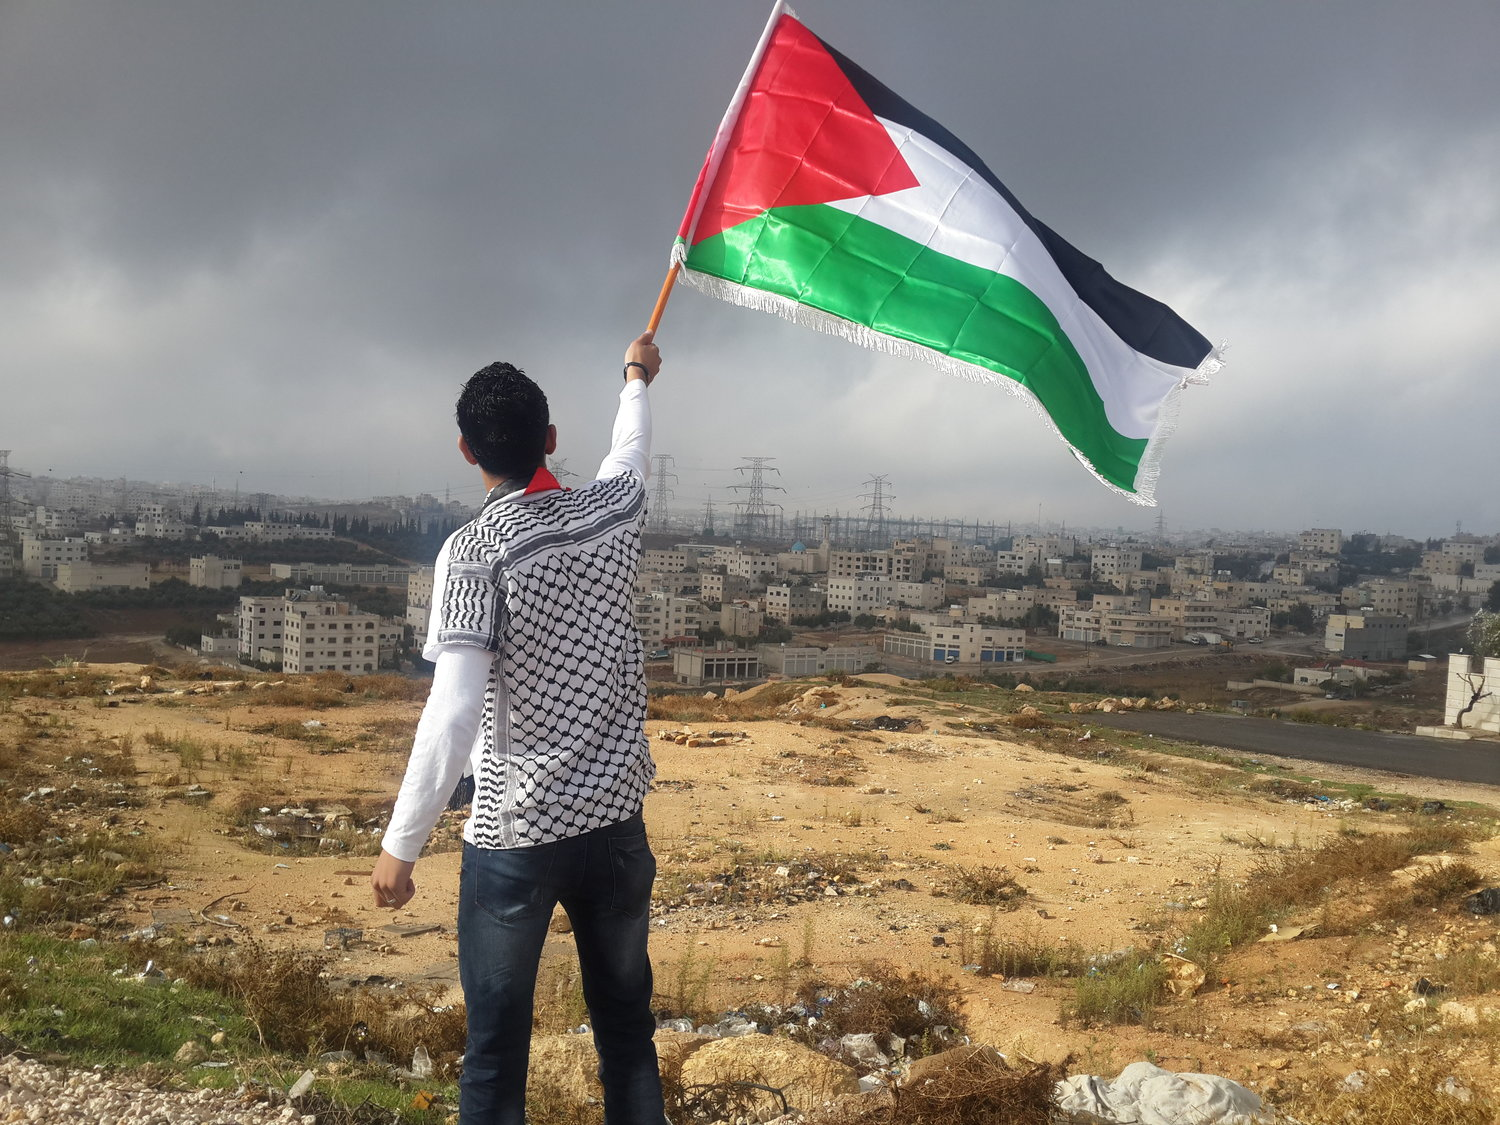 Have You Been to Palestine? — The Morningside Post